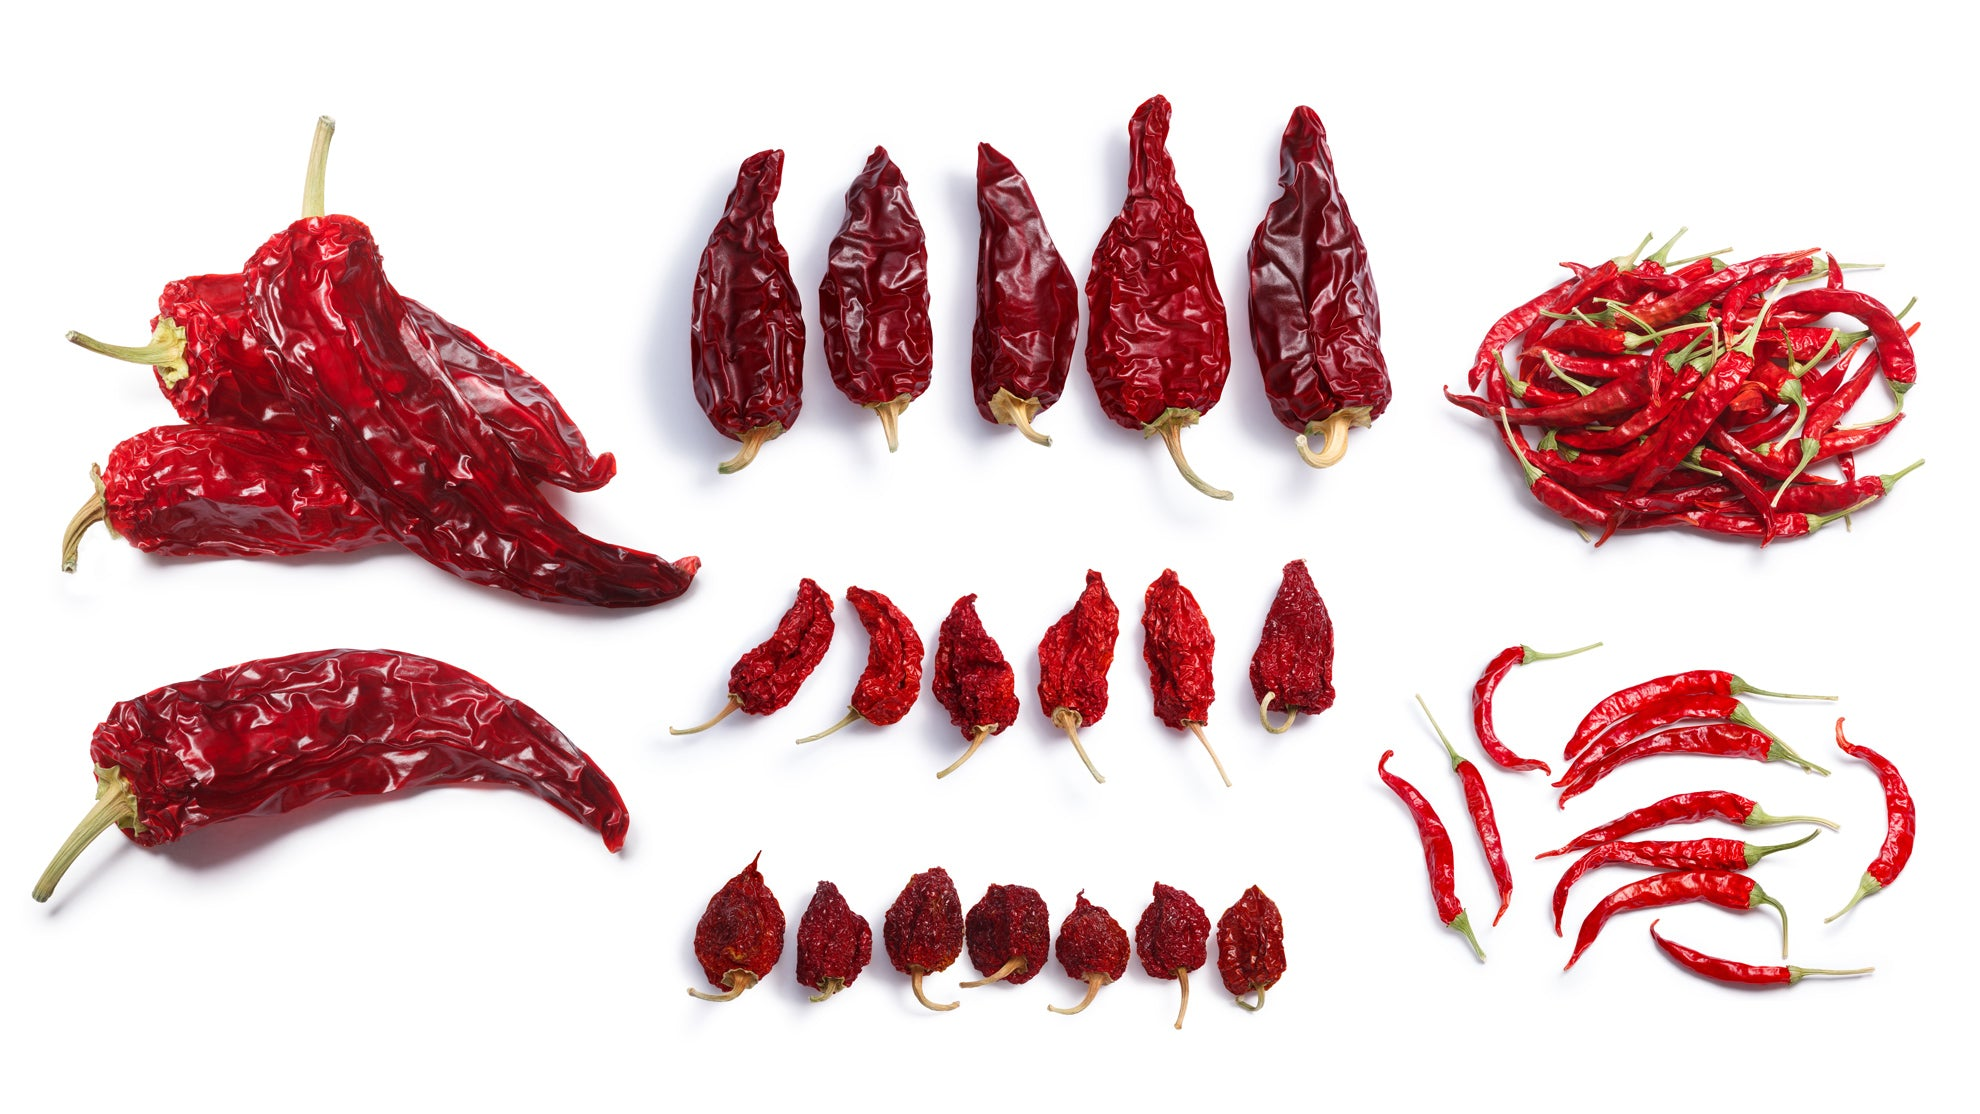 Dried Chile Names